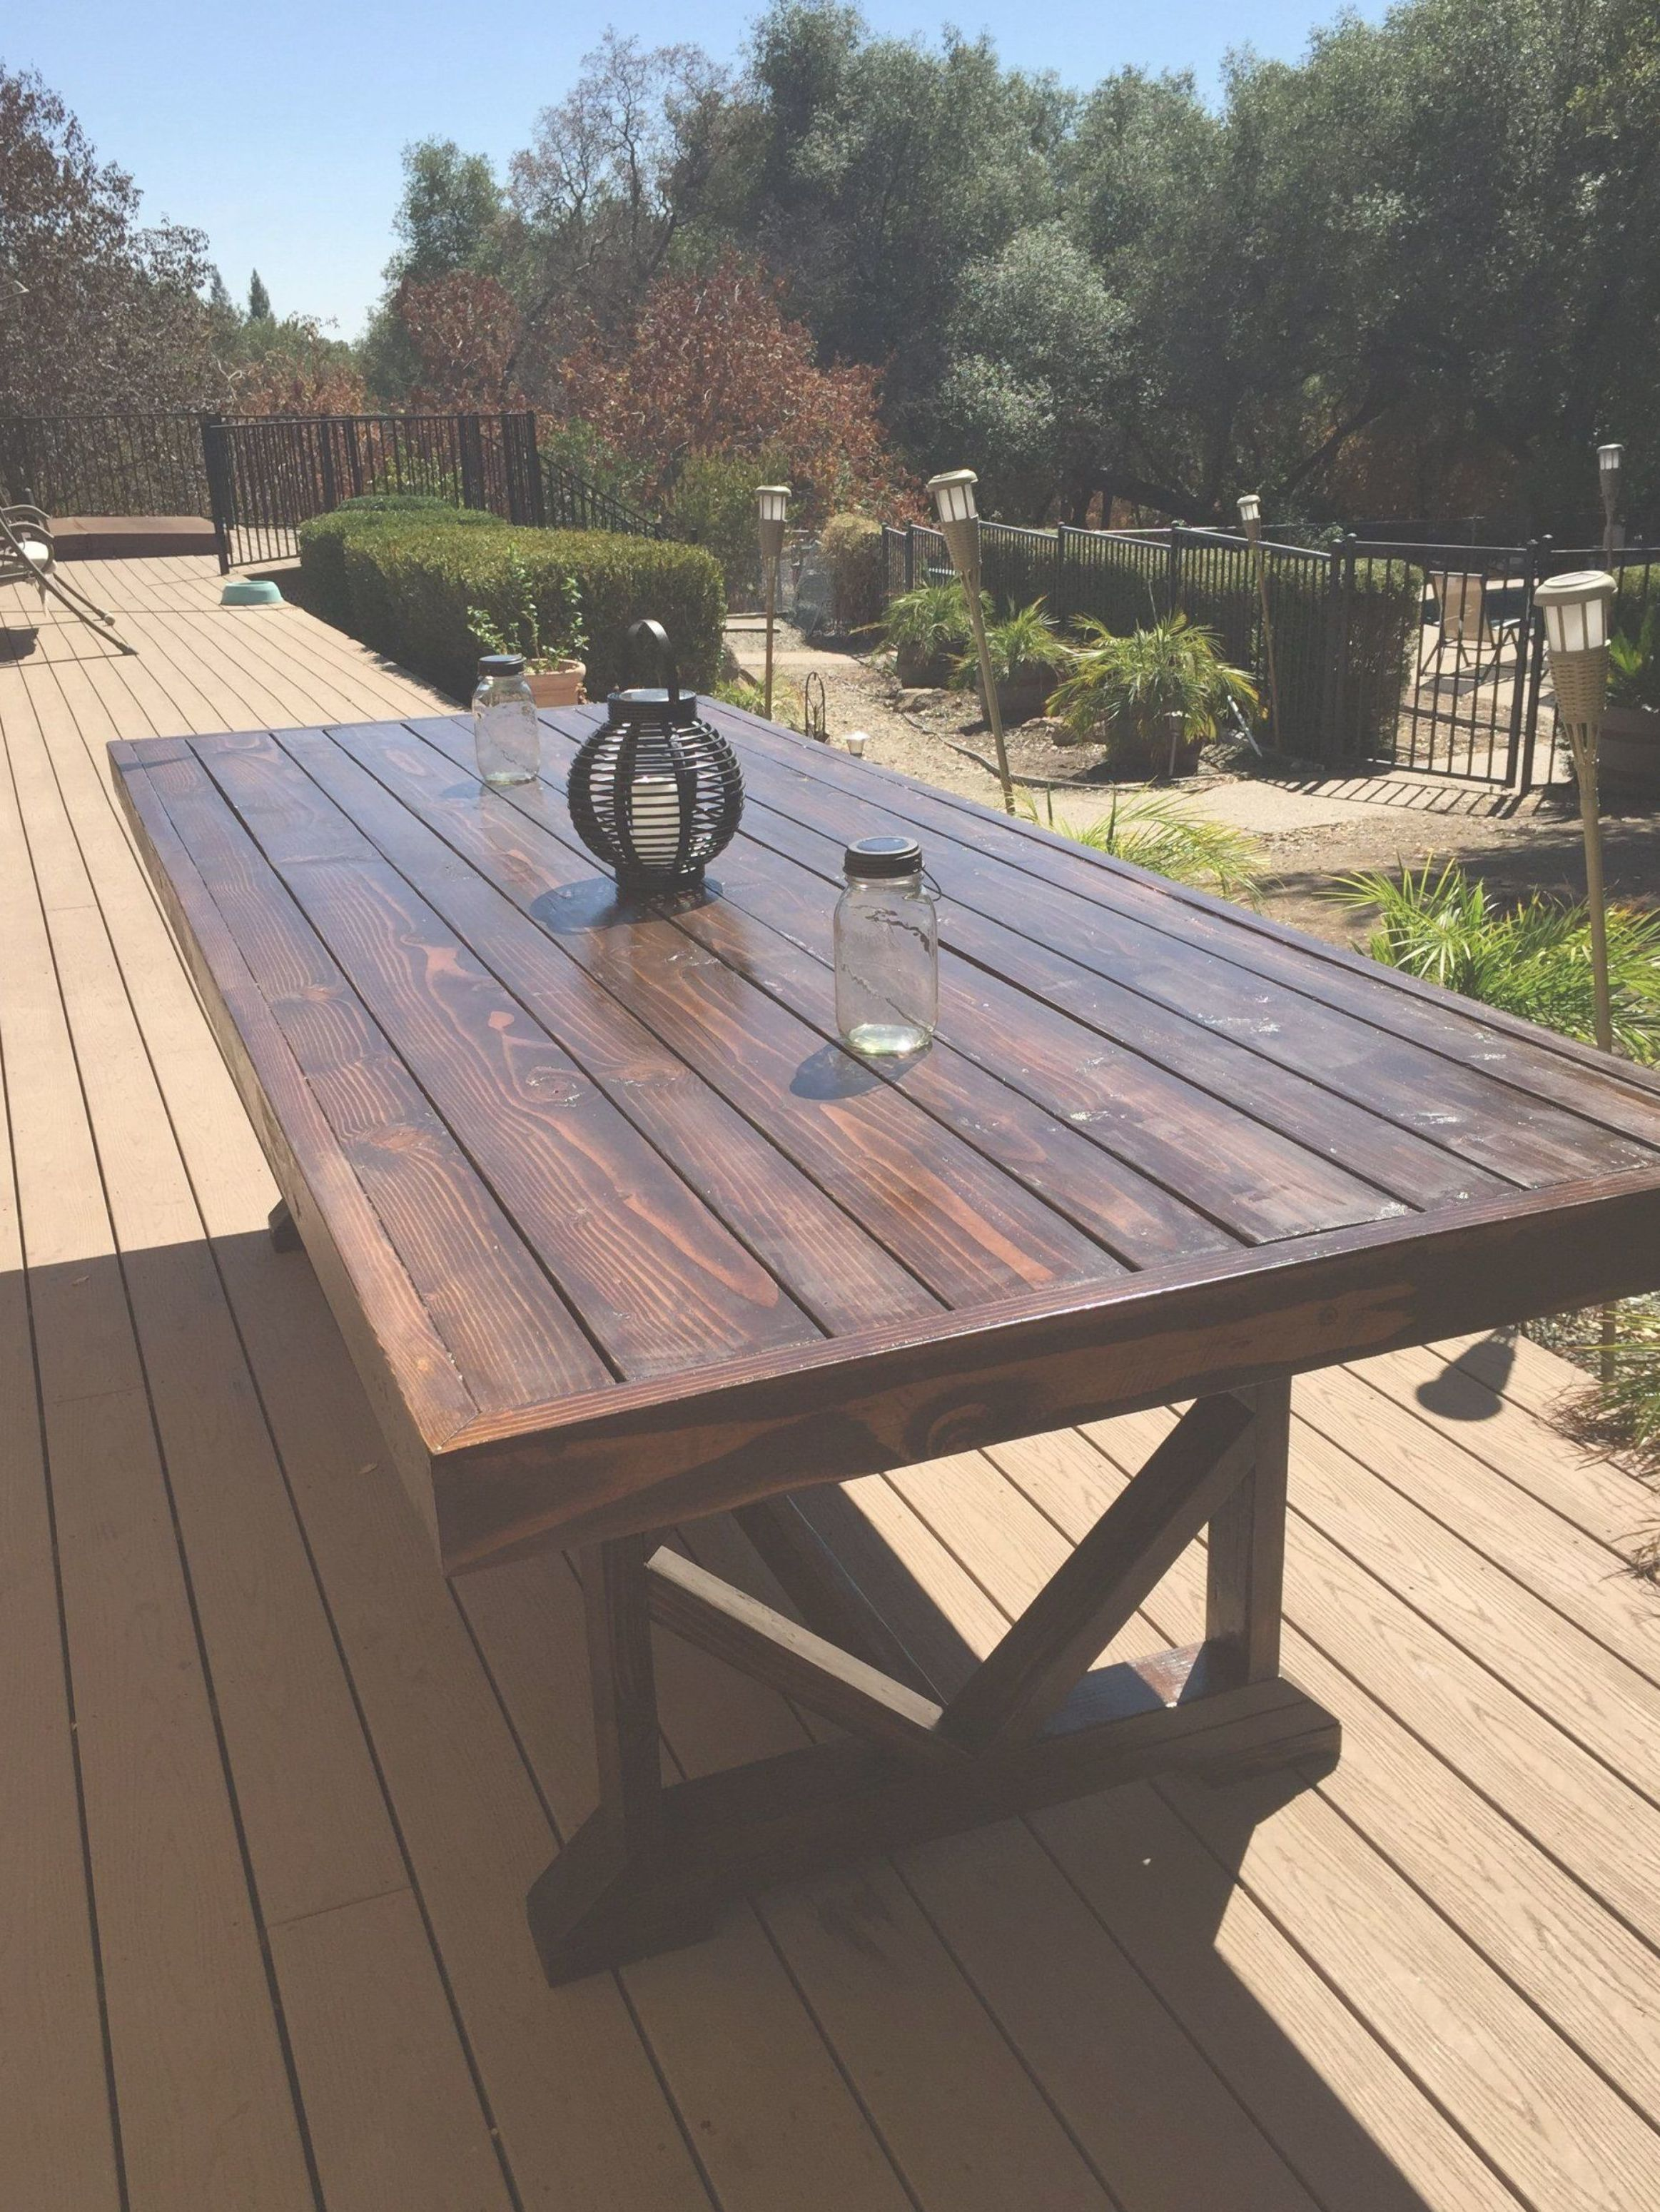 Diy Large Outdoor Dining Table Outdoor Dining Table Diy Outdoor Wood Table Wooden Outdoor Table